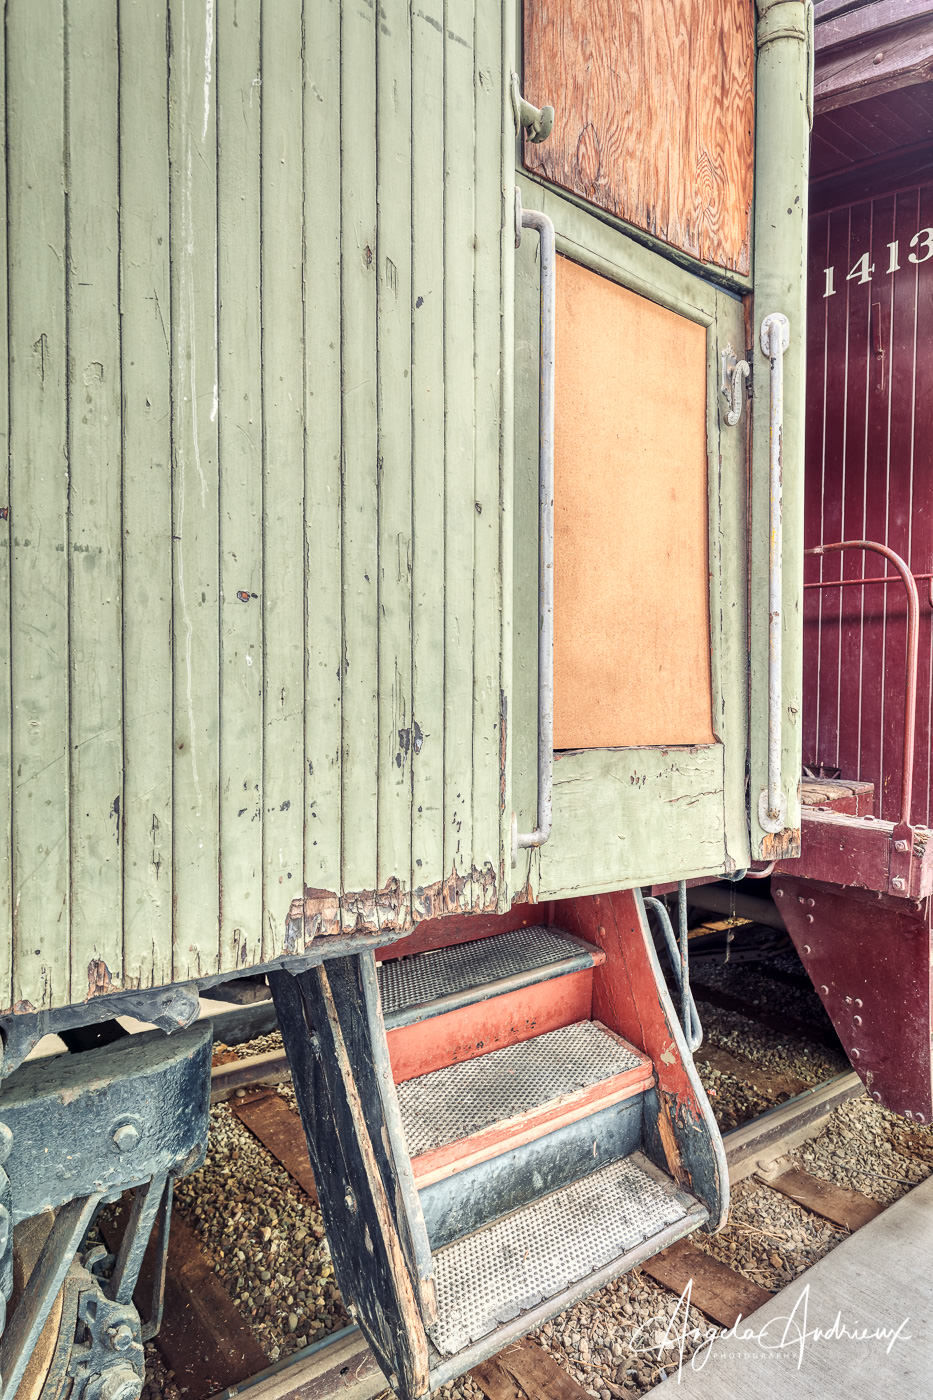 Rail car textures and colors at the Pacific Southwest Railway Museum in Campo, California